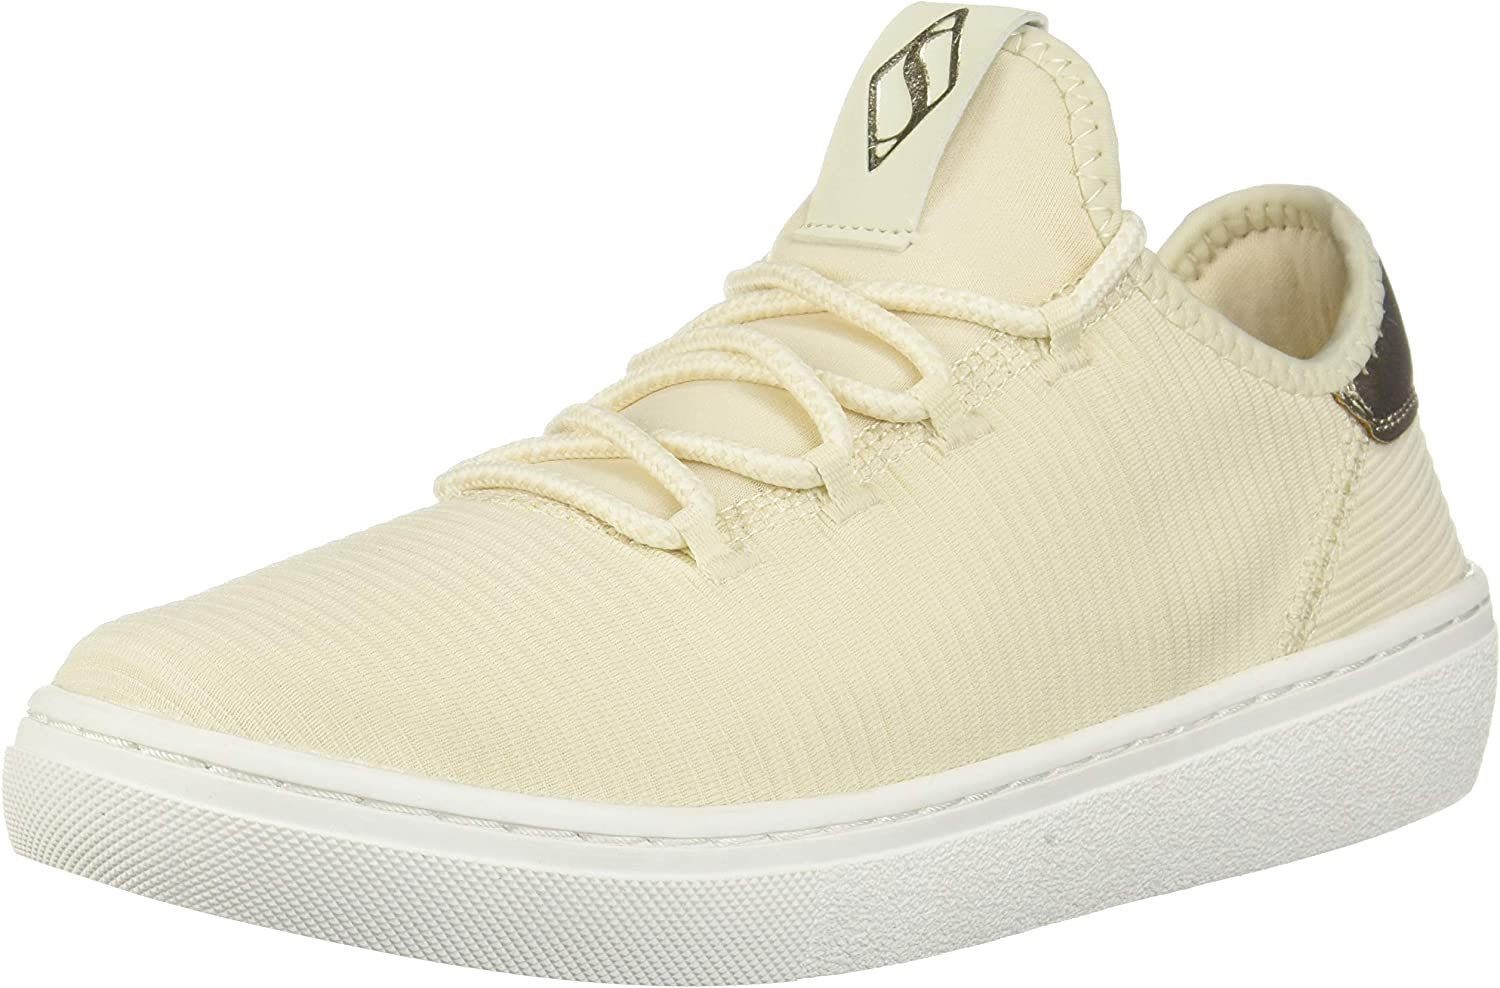 Skechers Womens goldie Fashion Sneakers